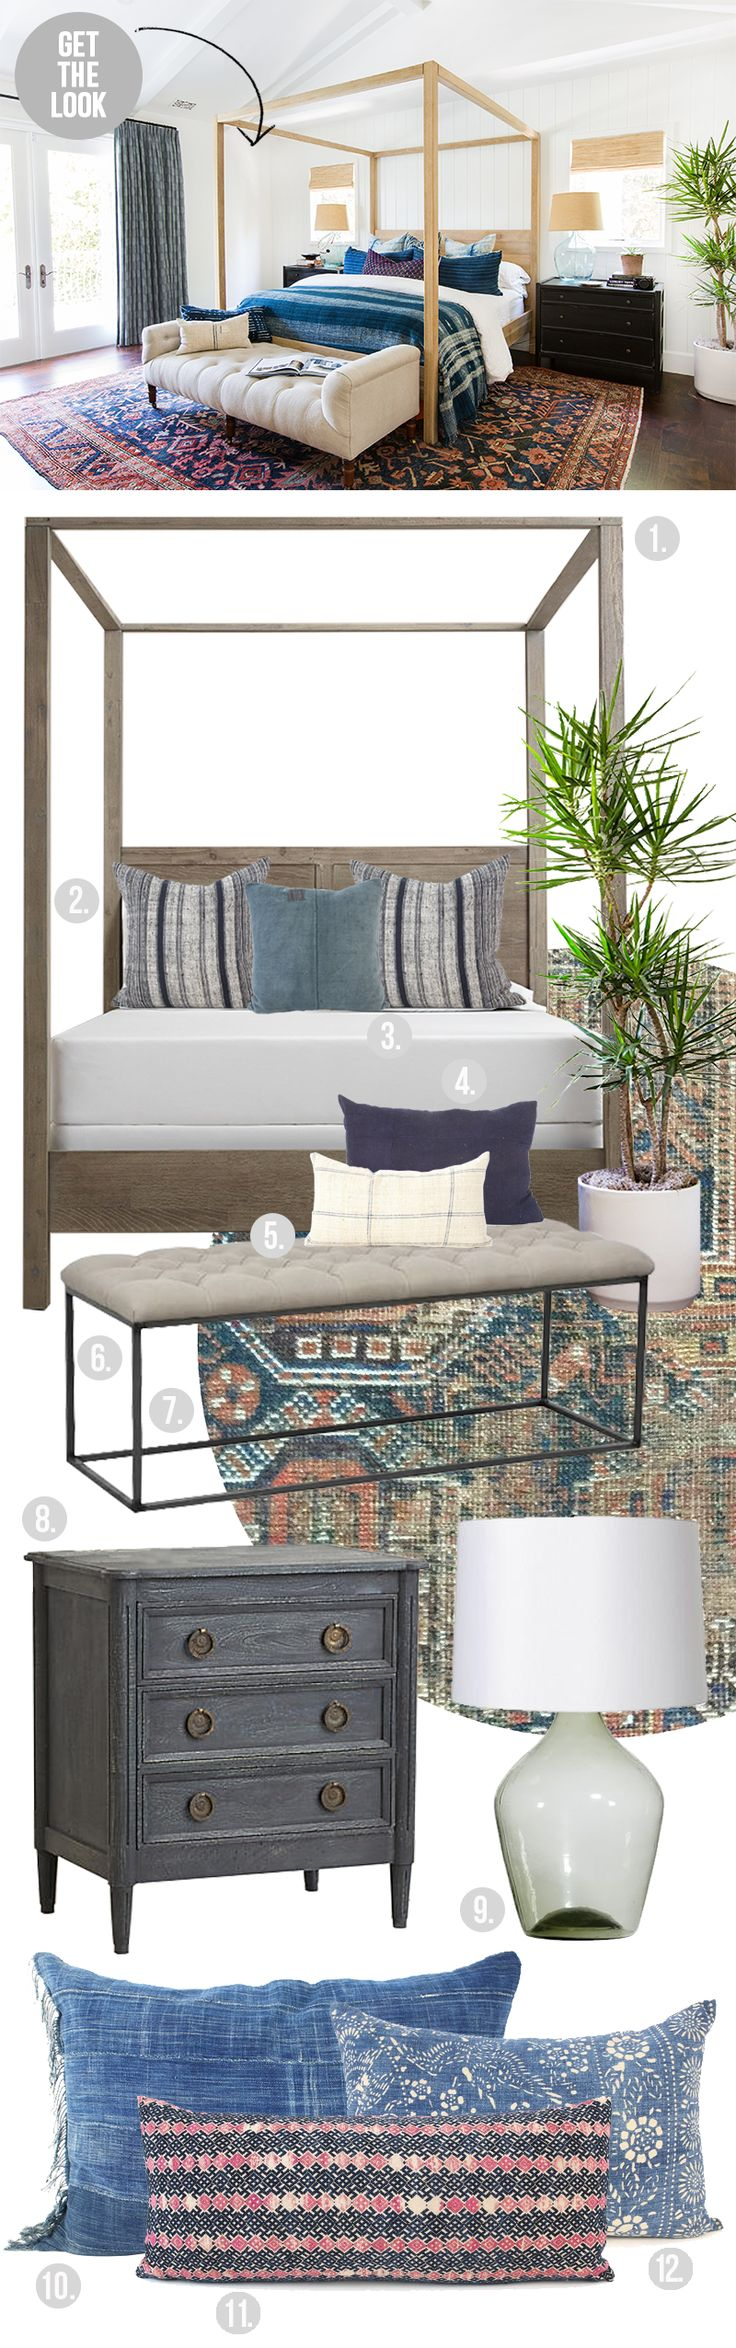 Get The Look // Client Second Times a Charm – Amber Interiors